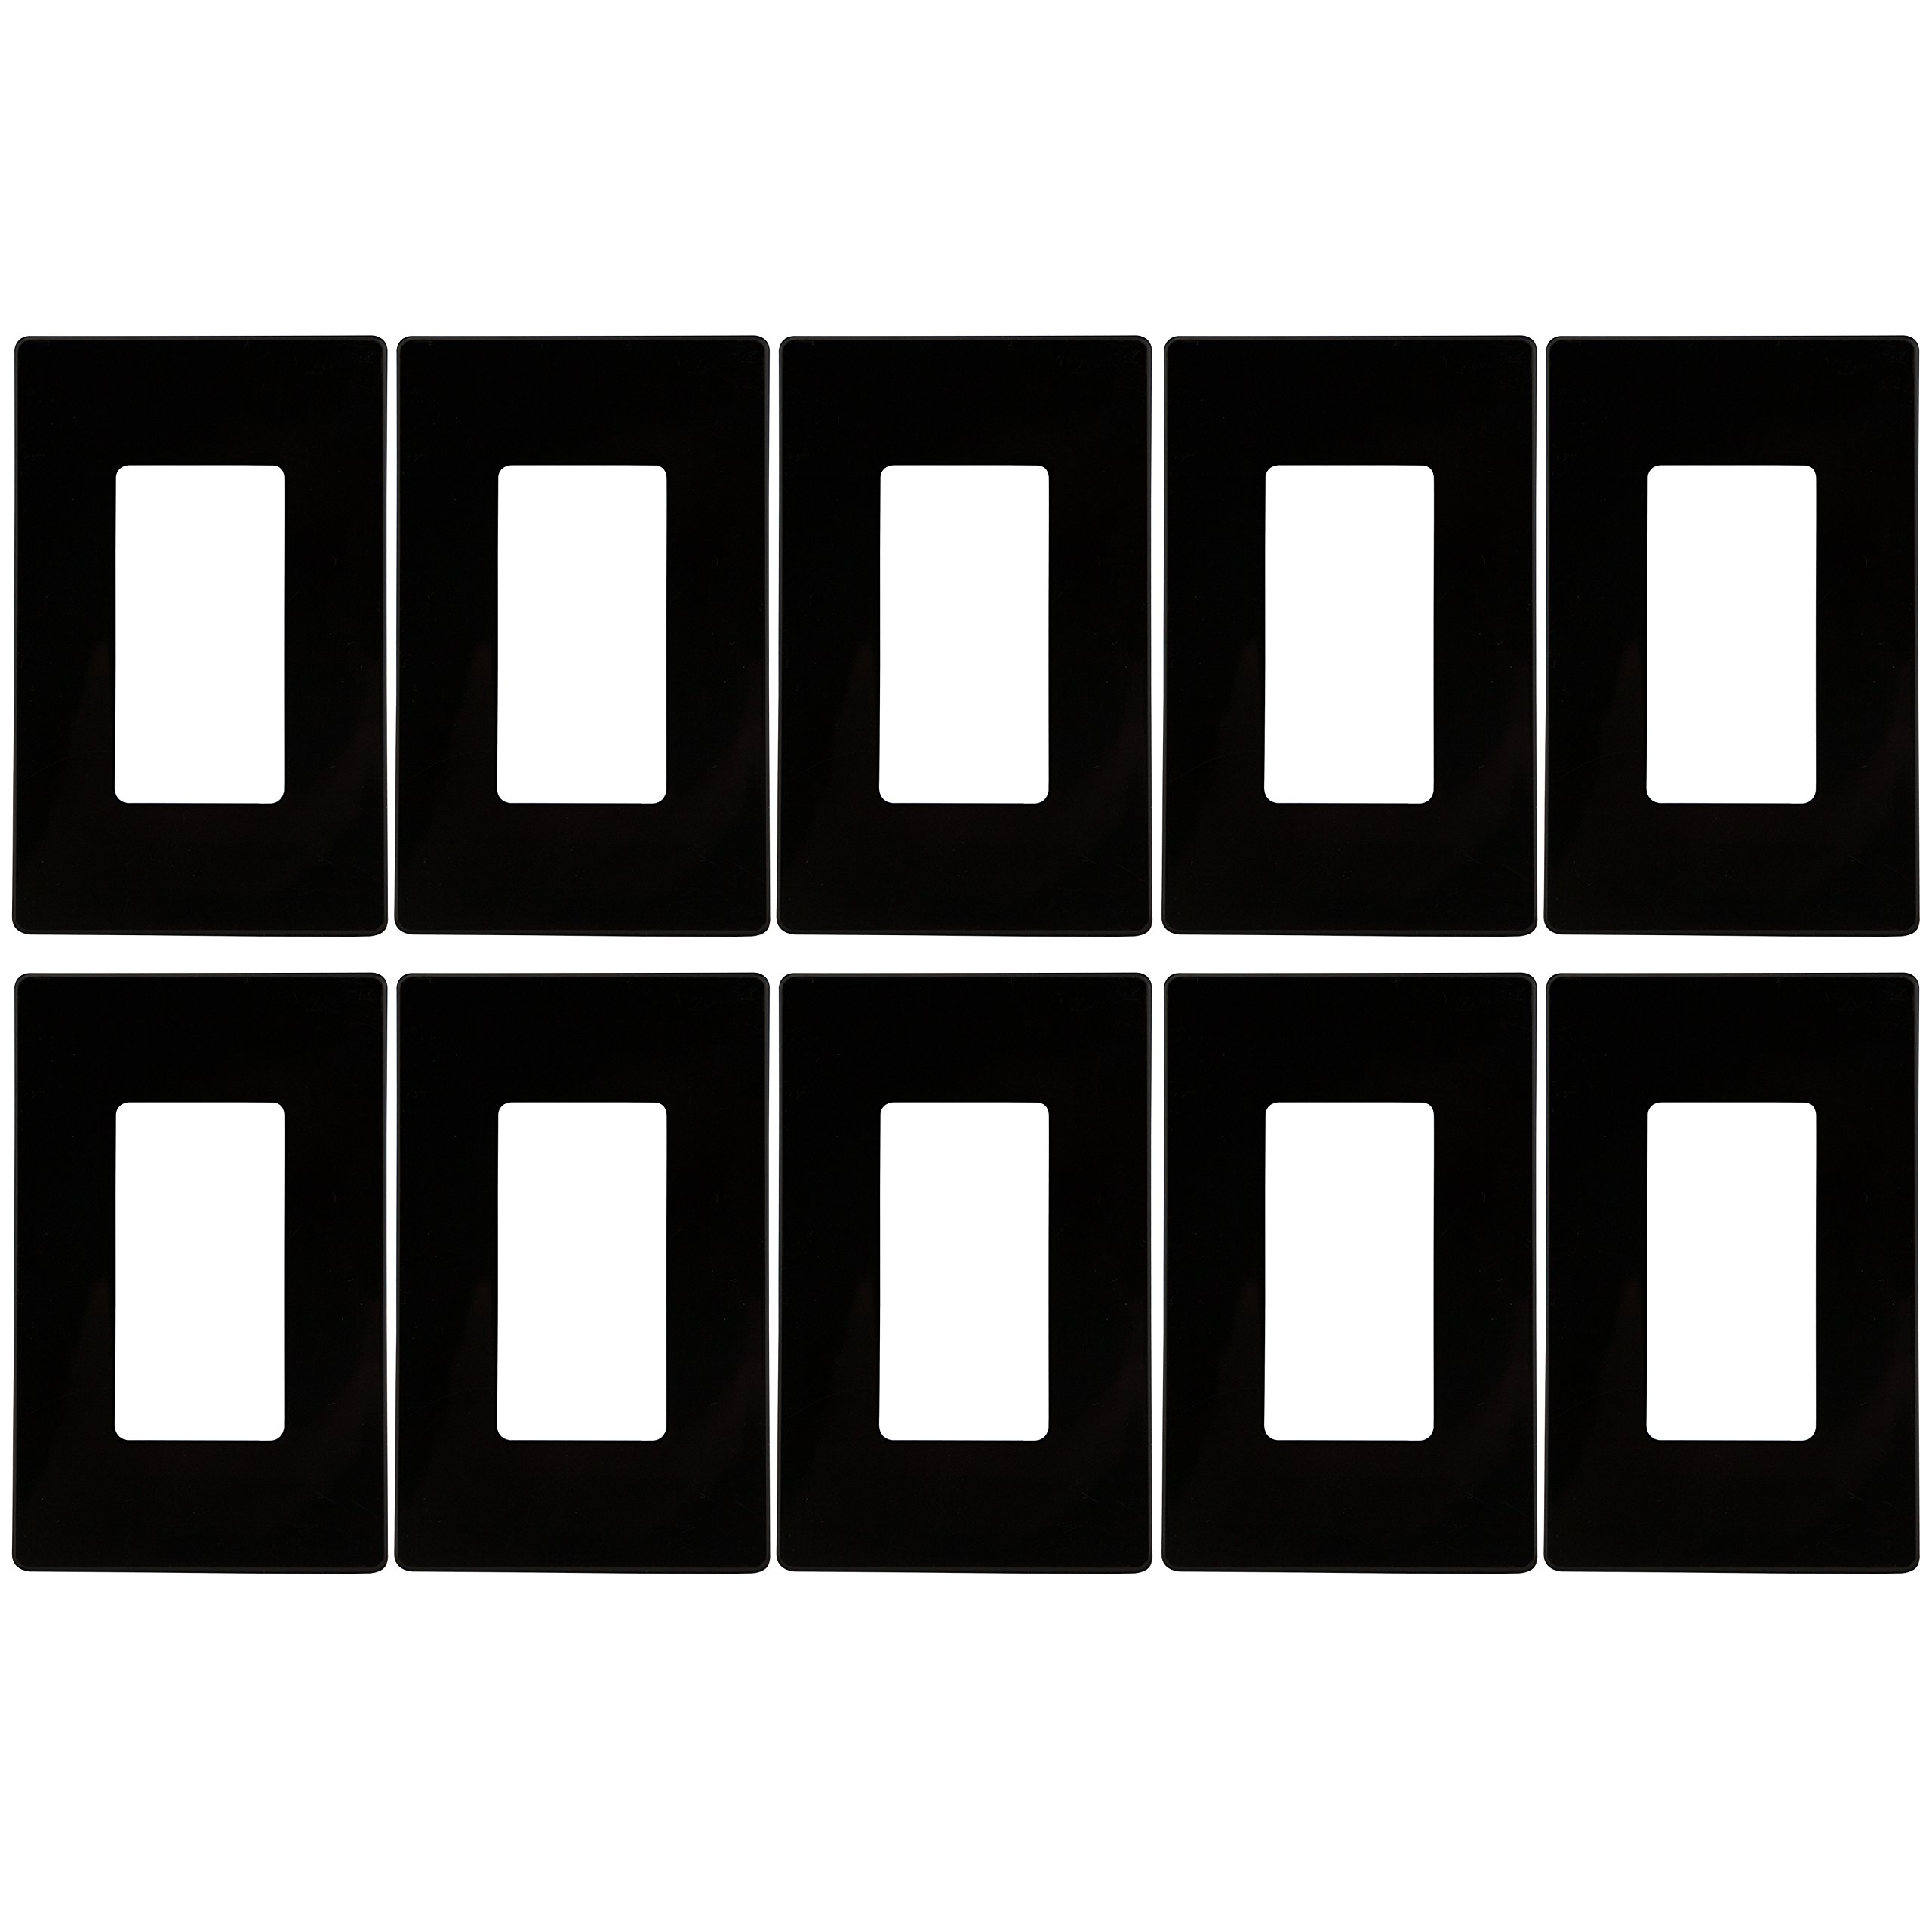 Enerlites SI8831-BK-10PCS Screwless Cover Child Safe Decorator Wall Plate, Standard Size 1-Gang, Unbreakable Polycarbonate Thermoplastic, Black (10 Pack)